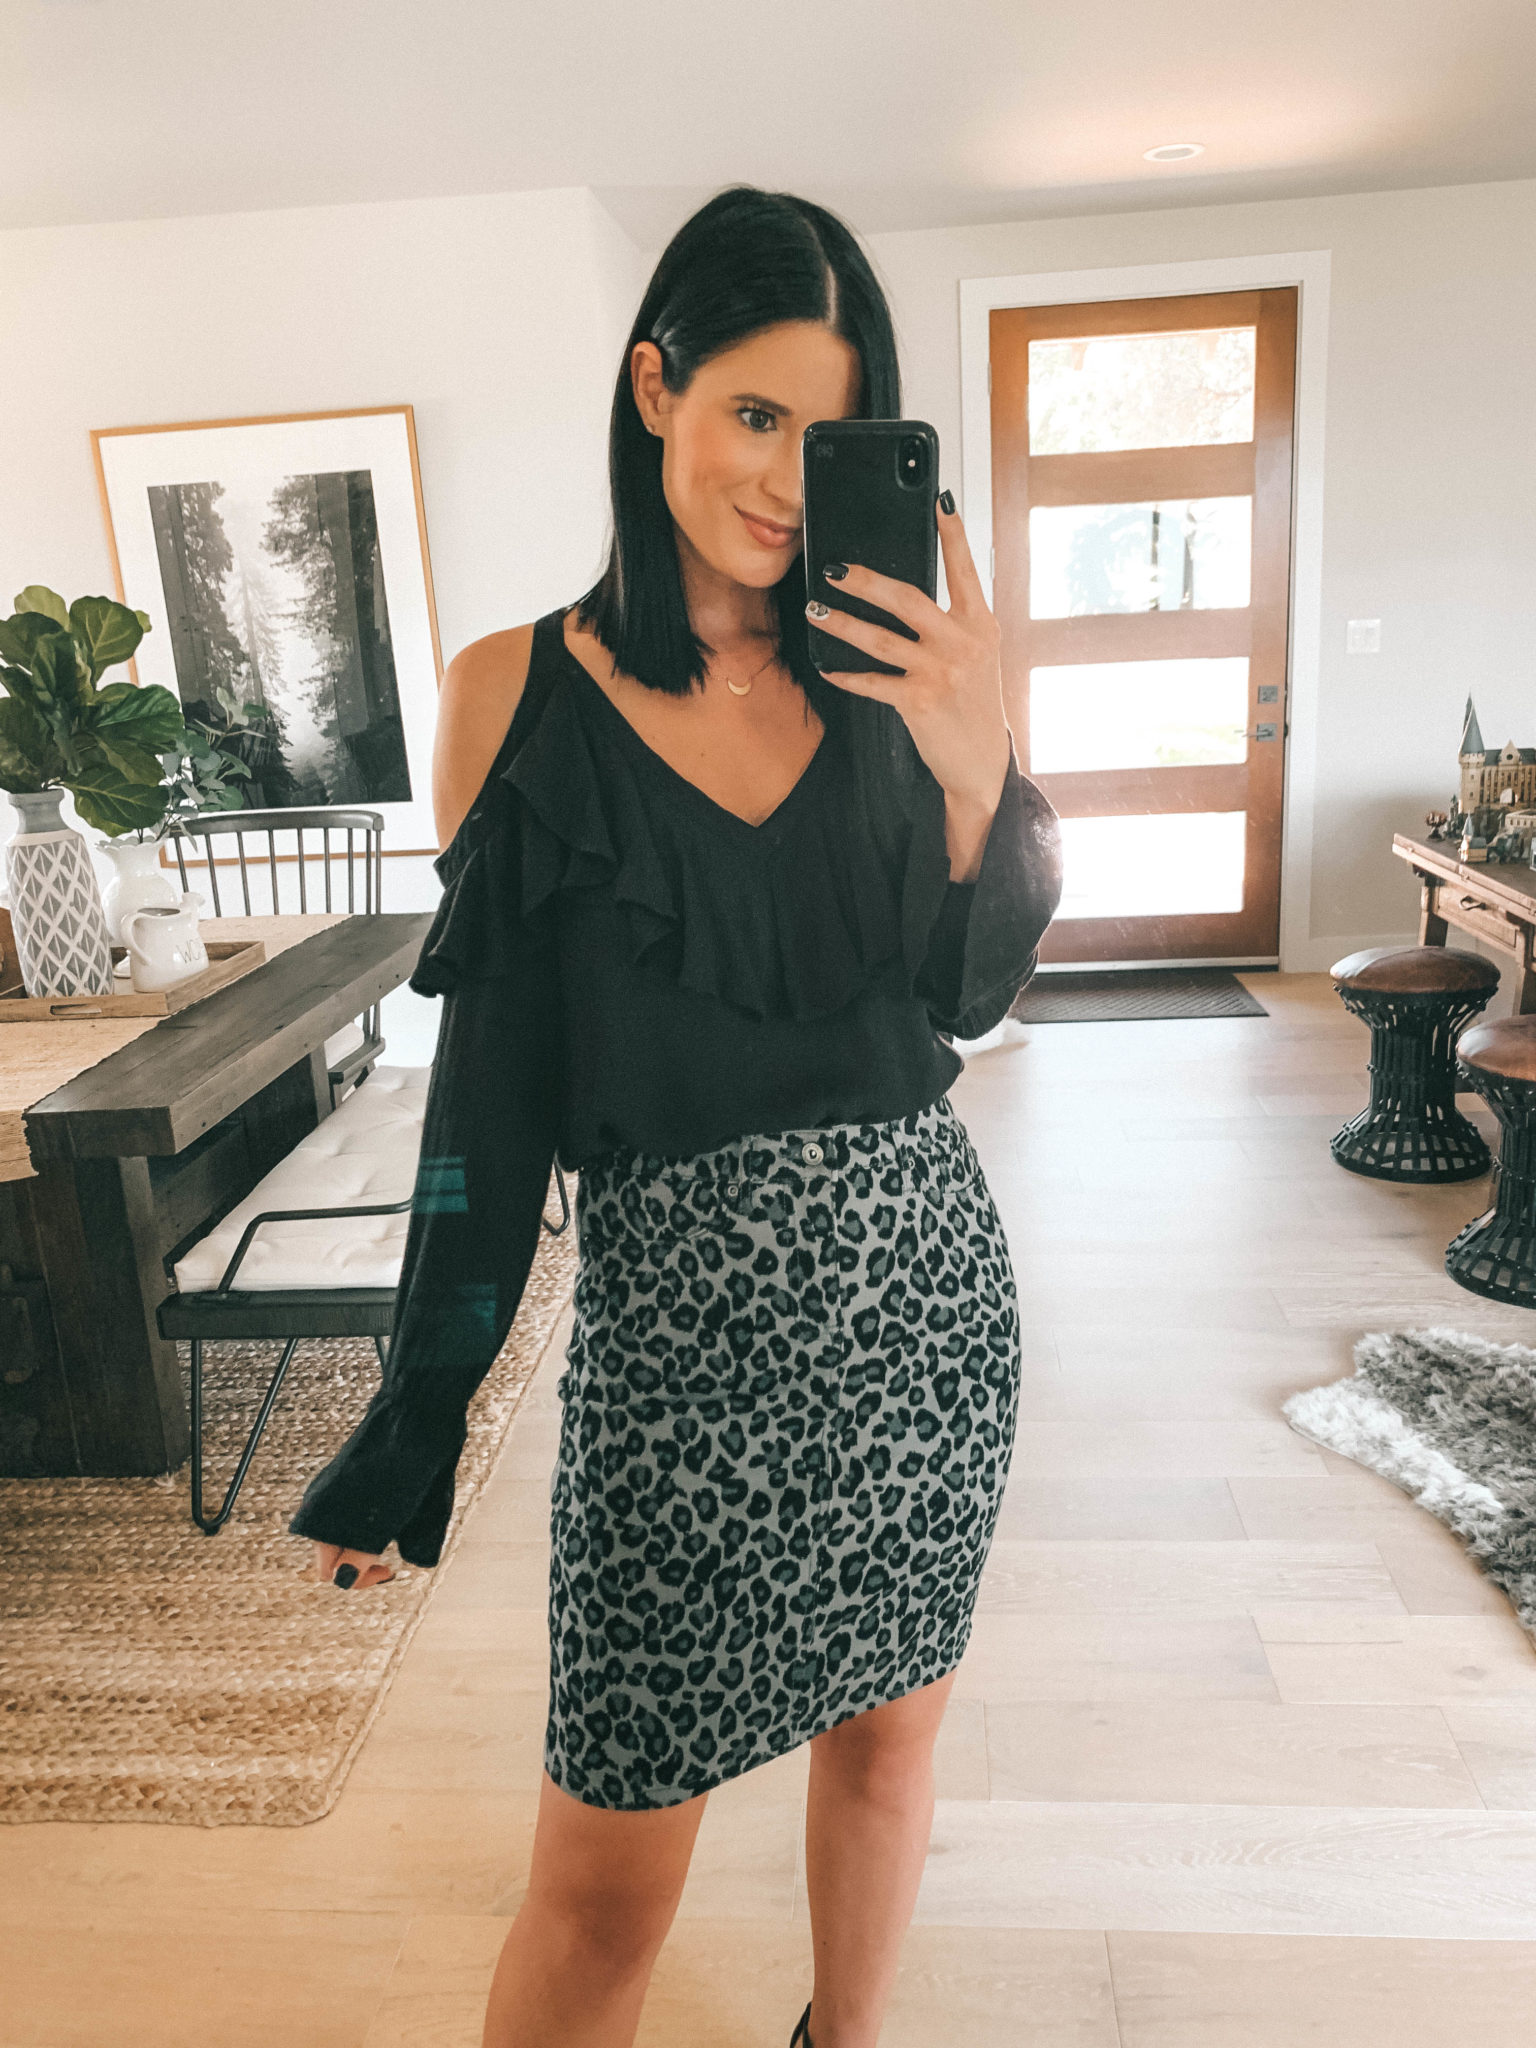 7 Affordable Fall Outfits from Walmart by popular Austin fashion blog, Dressed to Kill: image of a woman standing inside her house and wearing a black Walmart Sofia Jeans Cold-Shoulder Ruffle Neck Woven Top and Sofia Jeans Margarita Leopard Print Pencil Skirt.